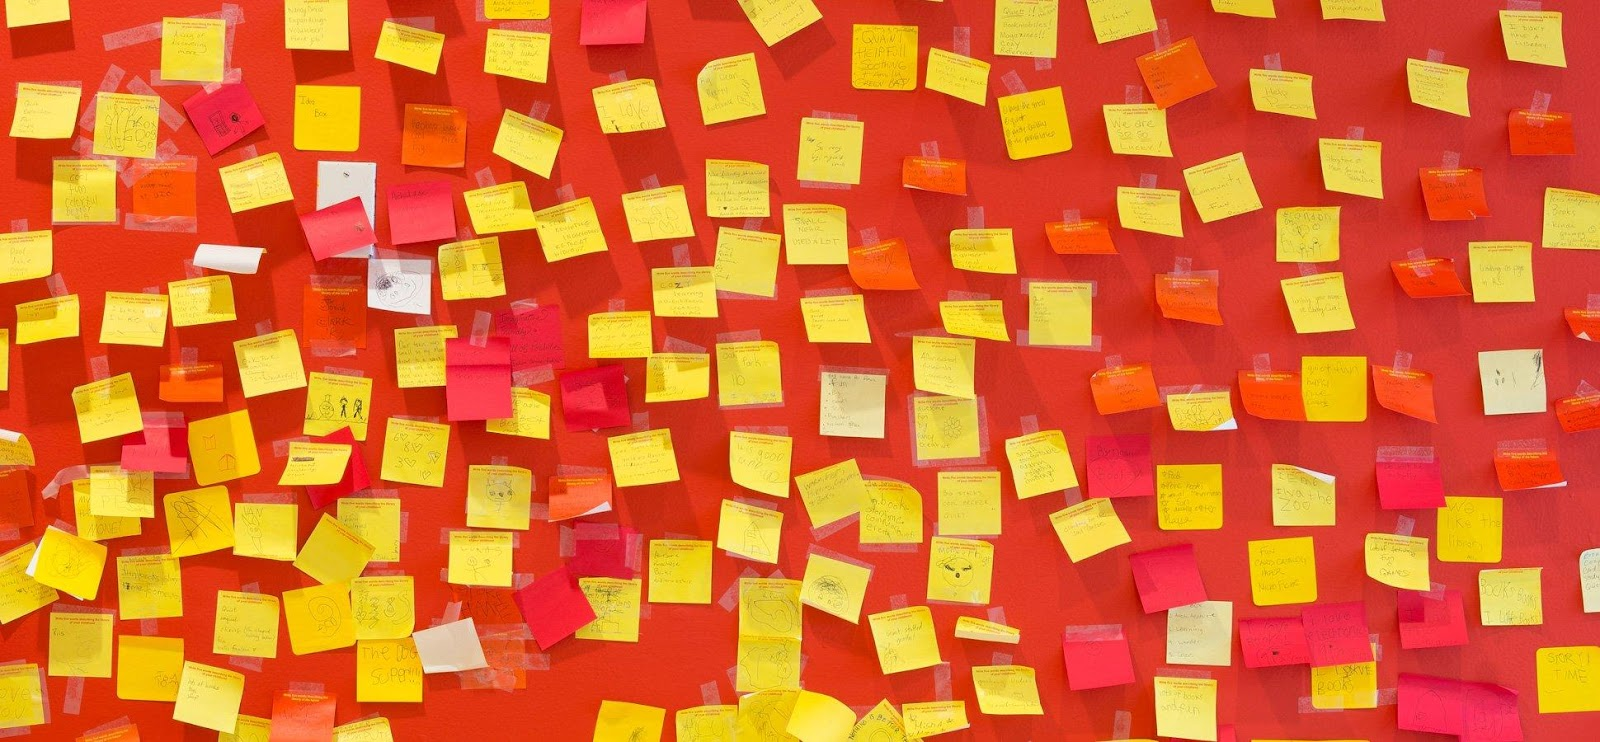 http://www.incimages.com/uploaded_files/image/1940x900/post-it-notes-wall%29_1940x900_33832.jpg